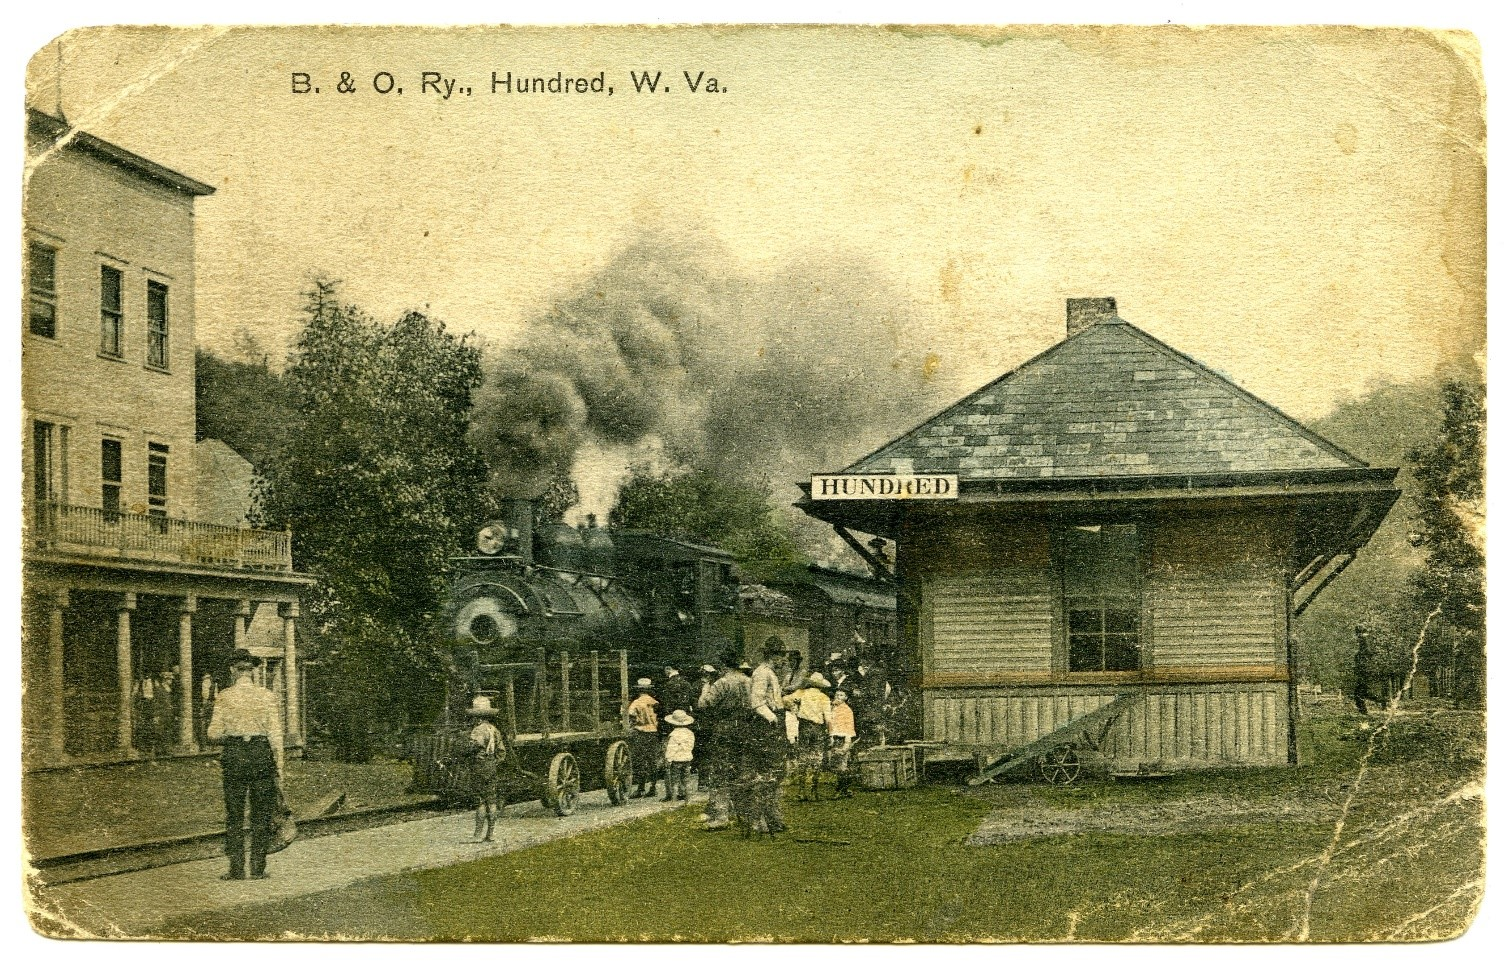 Small train depot, train track with train, and unidentified building